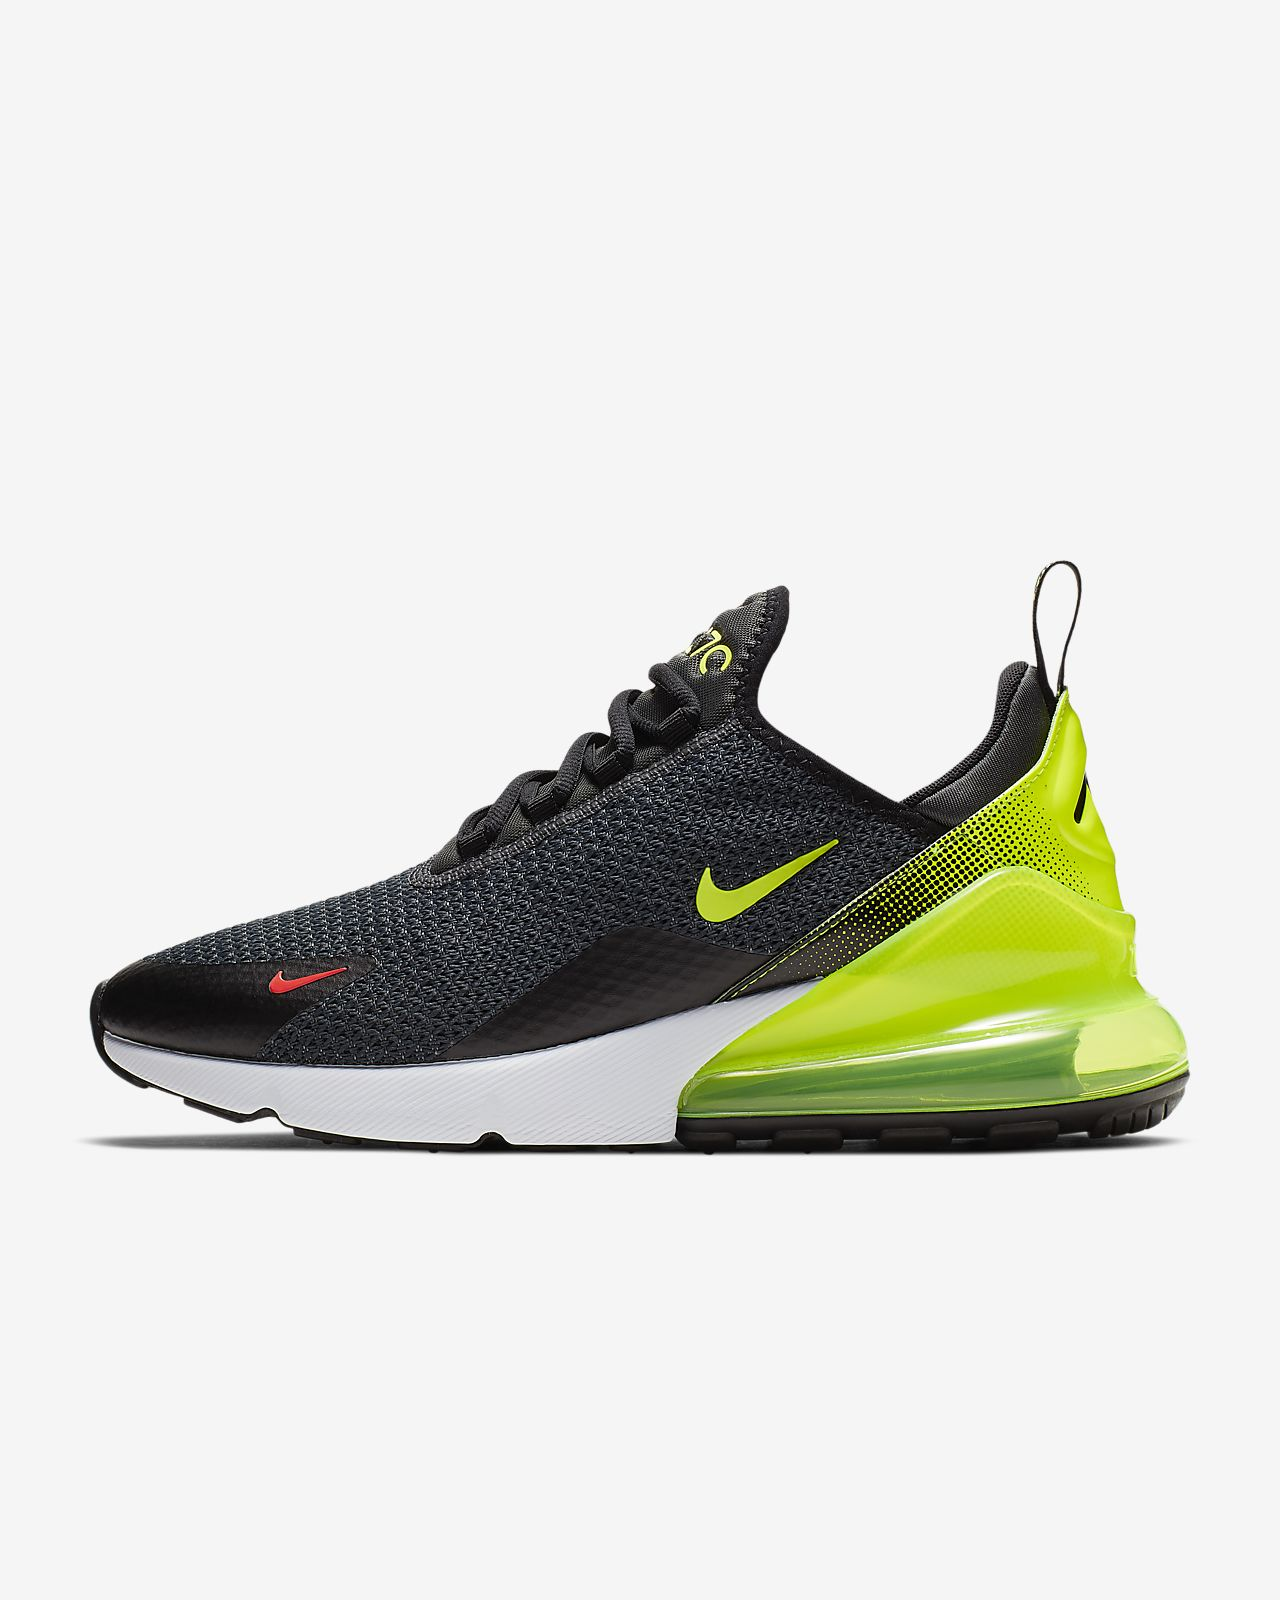 cheap for discount 91f3f 553c5 ... Nike Air Max 270 SE Men s Shoe